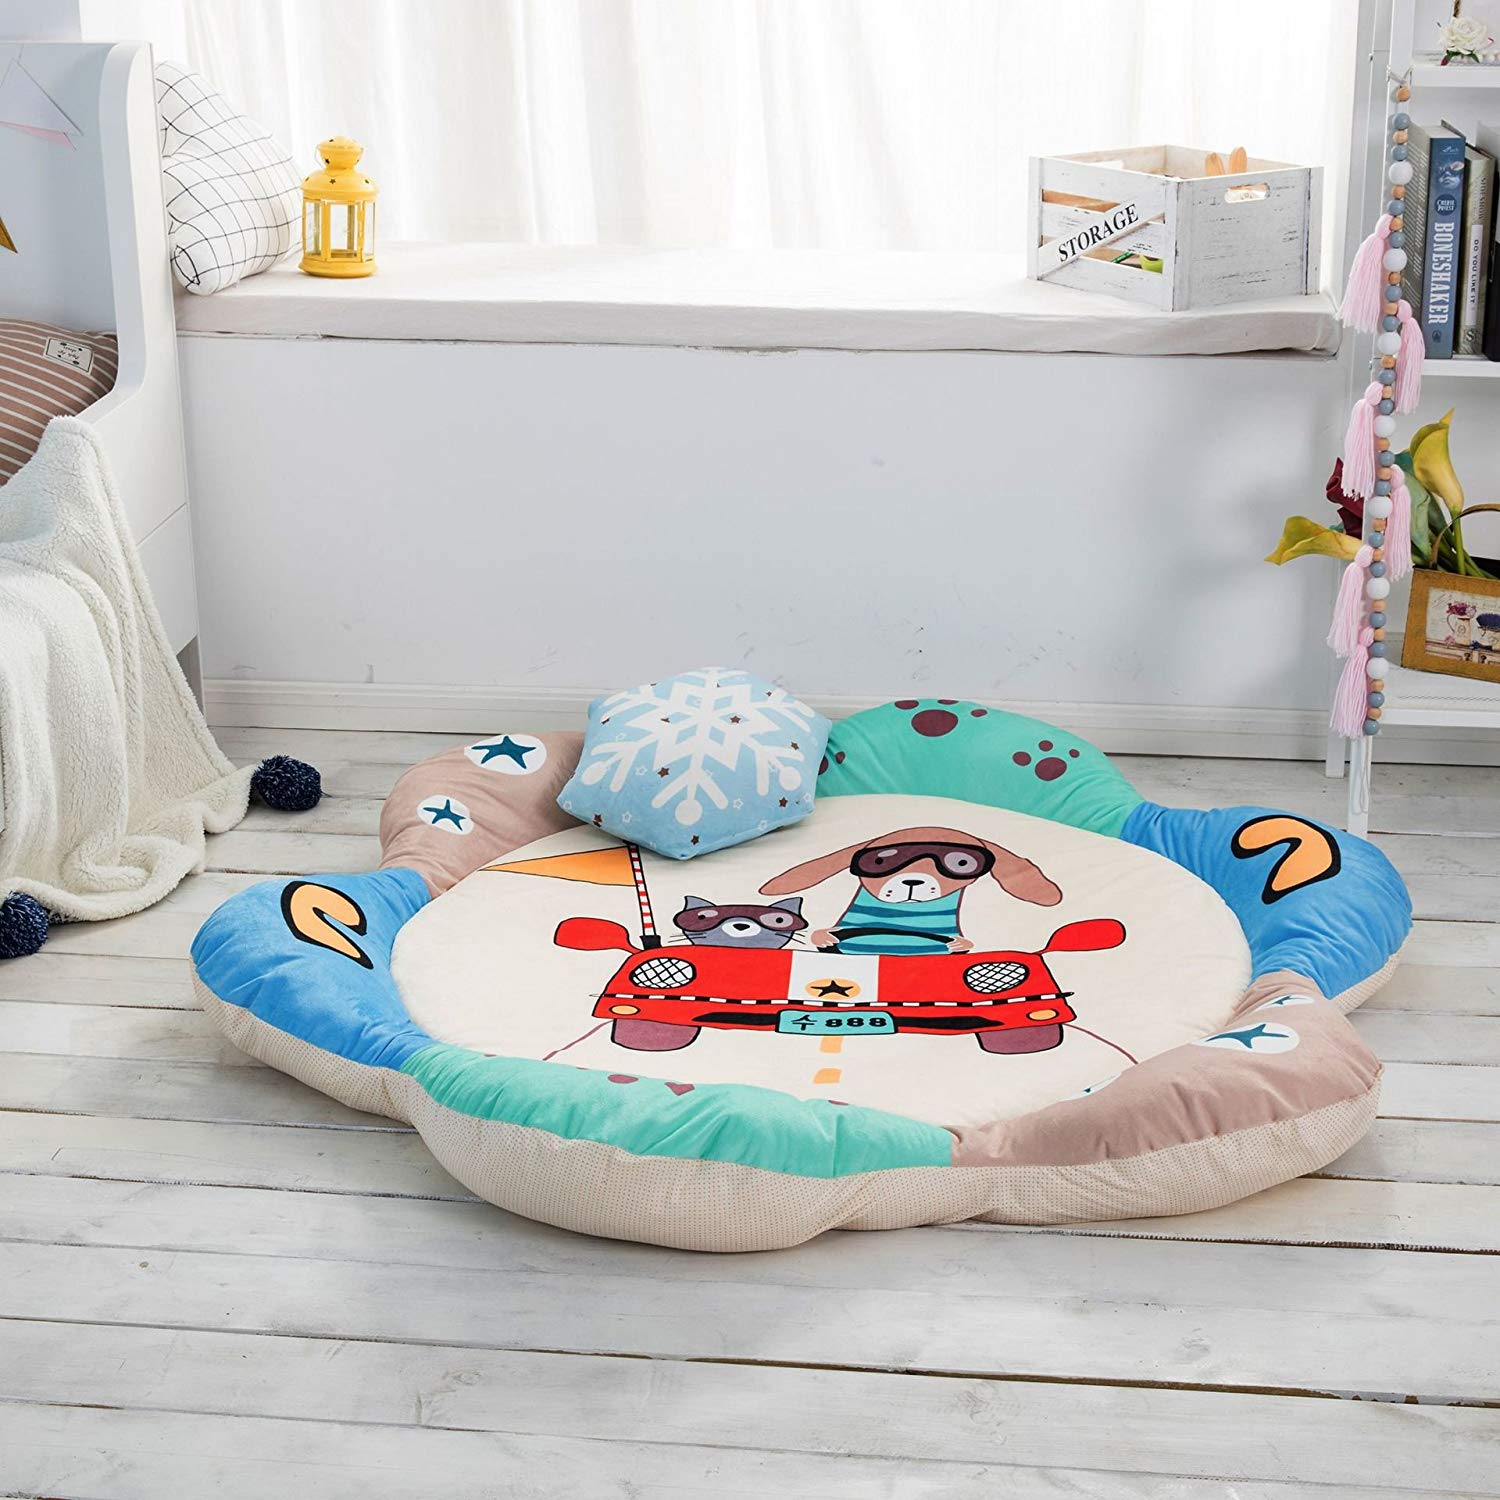 Soft Fenced Round Rug Cotton Baby Play Mat Round Rugs Sunflower Petals Carpet Play Mat Extra-Thick Round Mat Kids Room Decoration 54.6 in (dog)